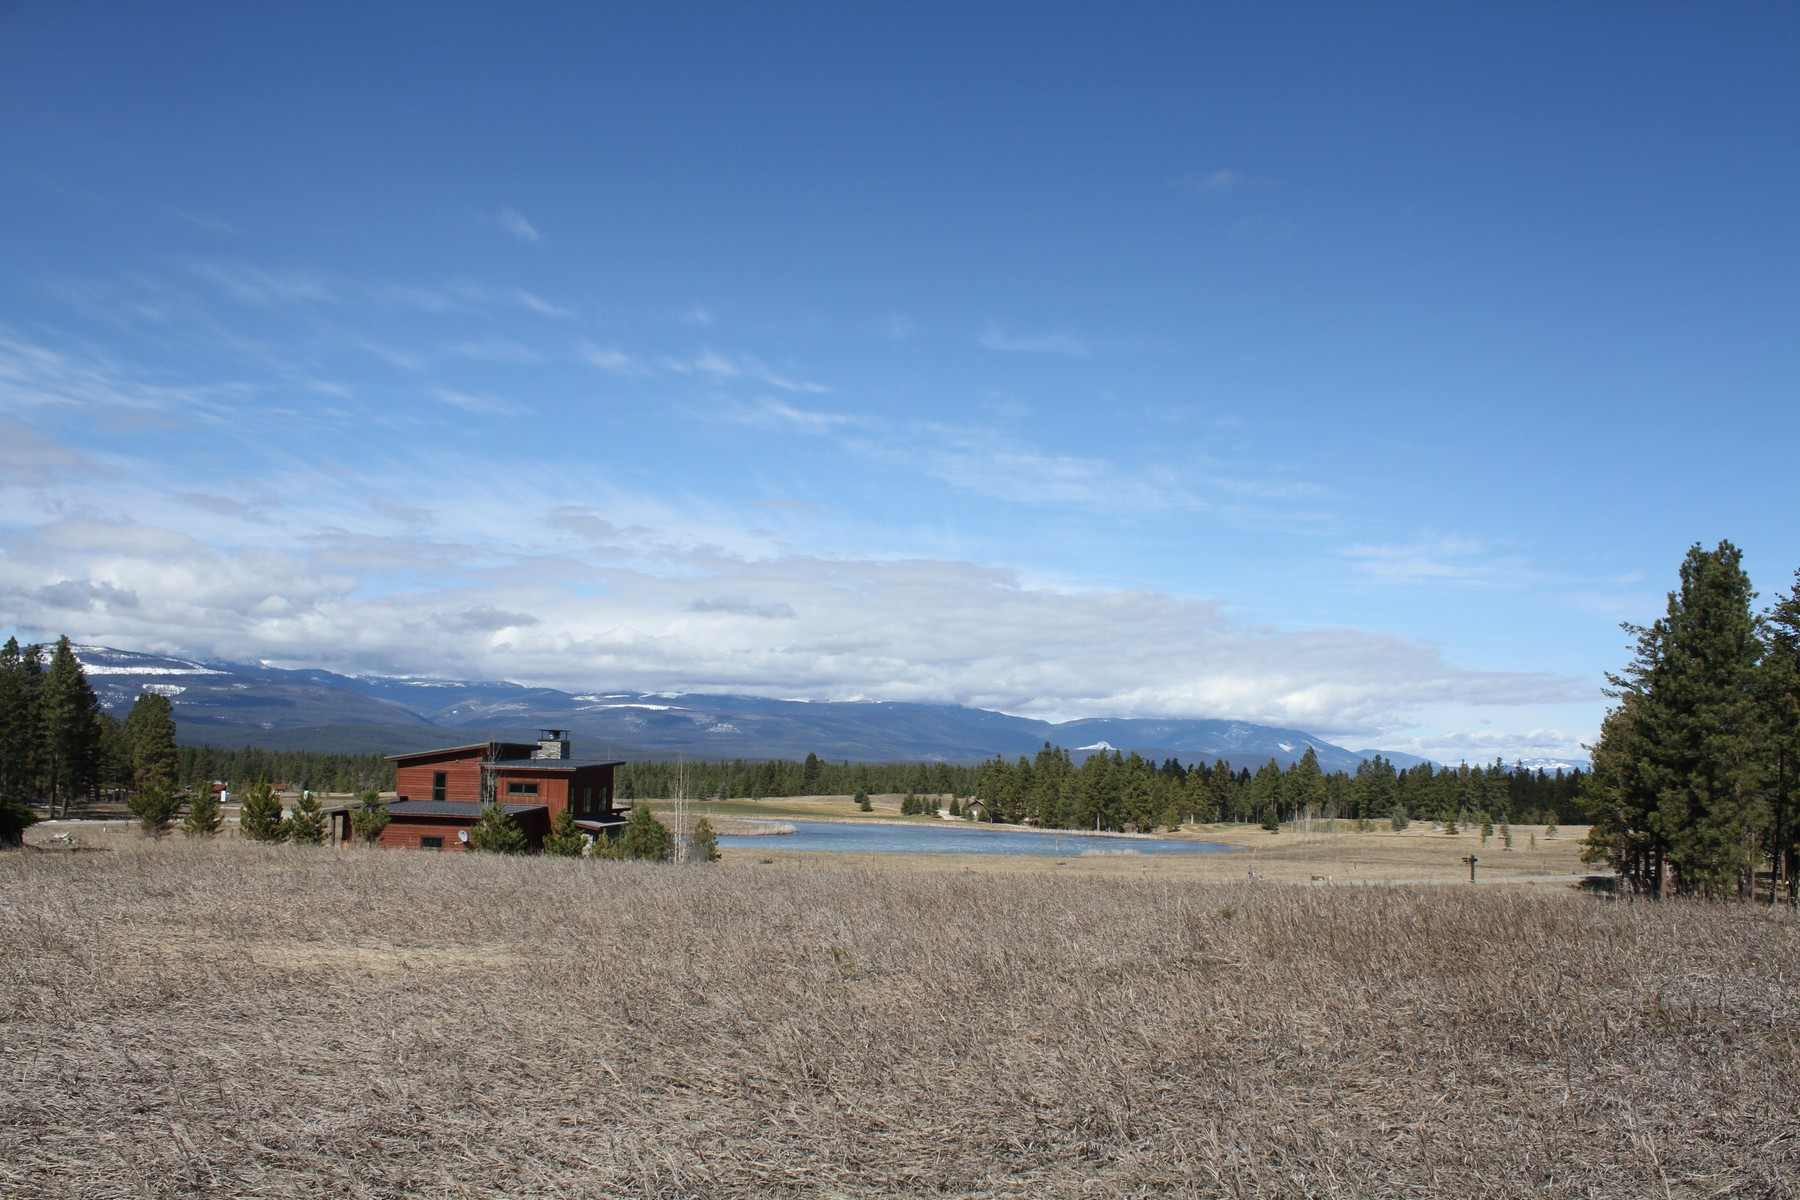 Additional photo for property listing at Wilderness Club Drive, 223A, Eureka, MT 59917 Wilderness Club Dr 223A Eureka, Montana 59917 United States